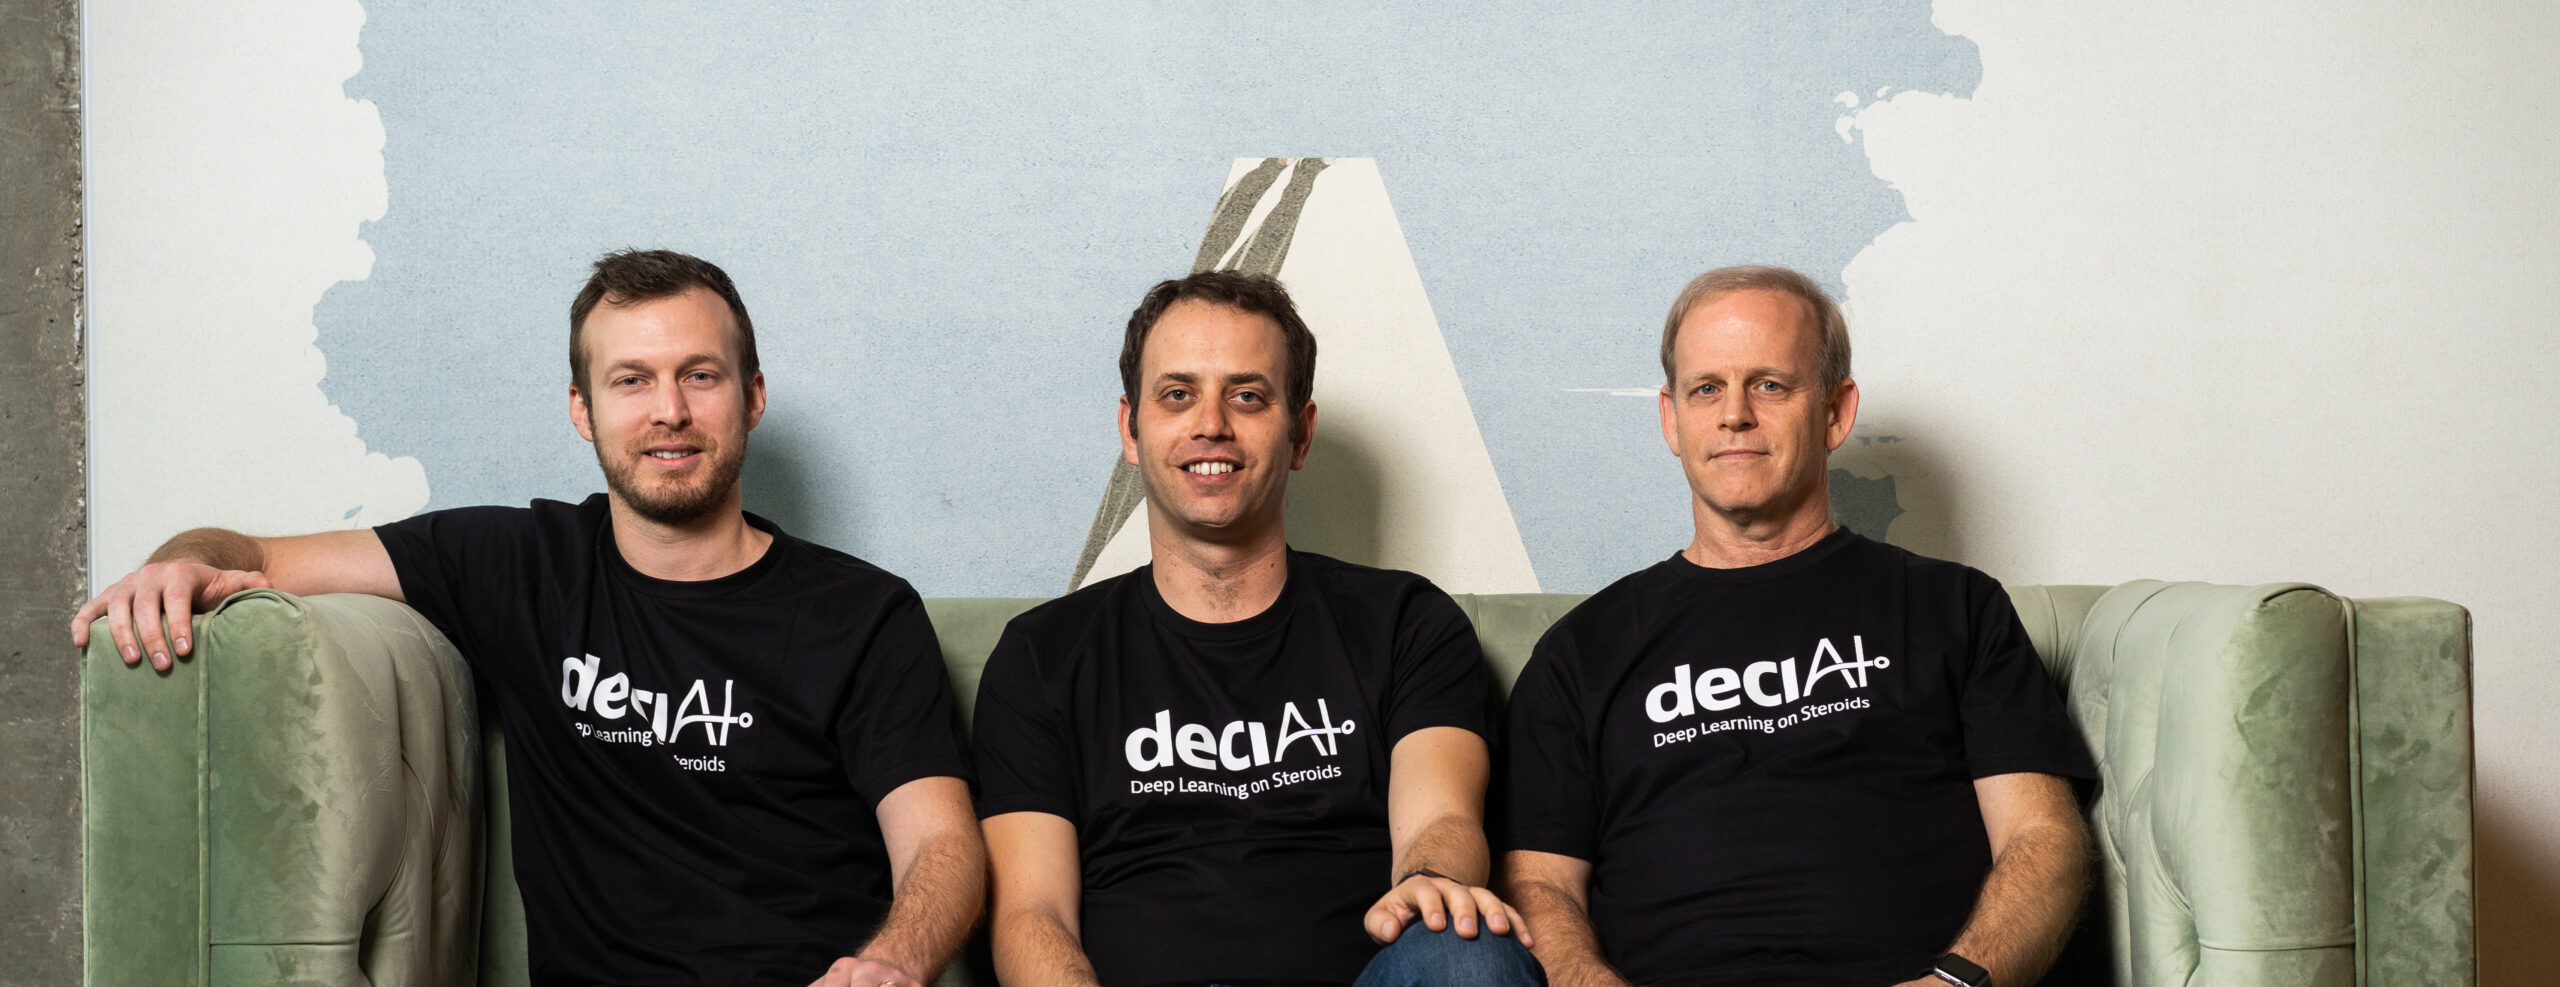 Startup Deci scoops $9.1m to fund AI that redesigns AI